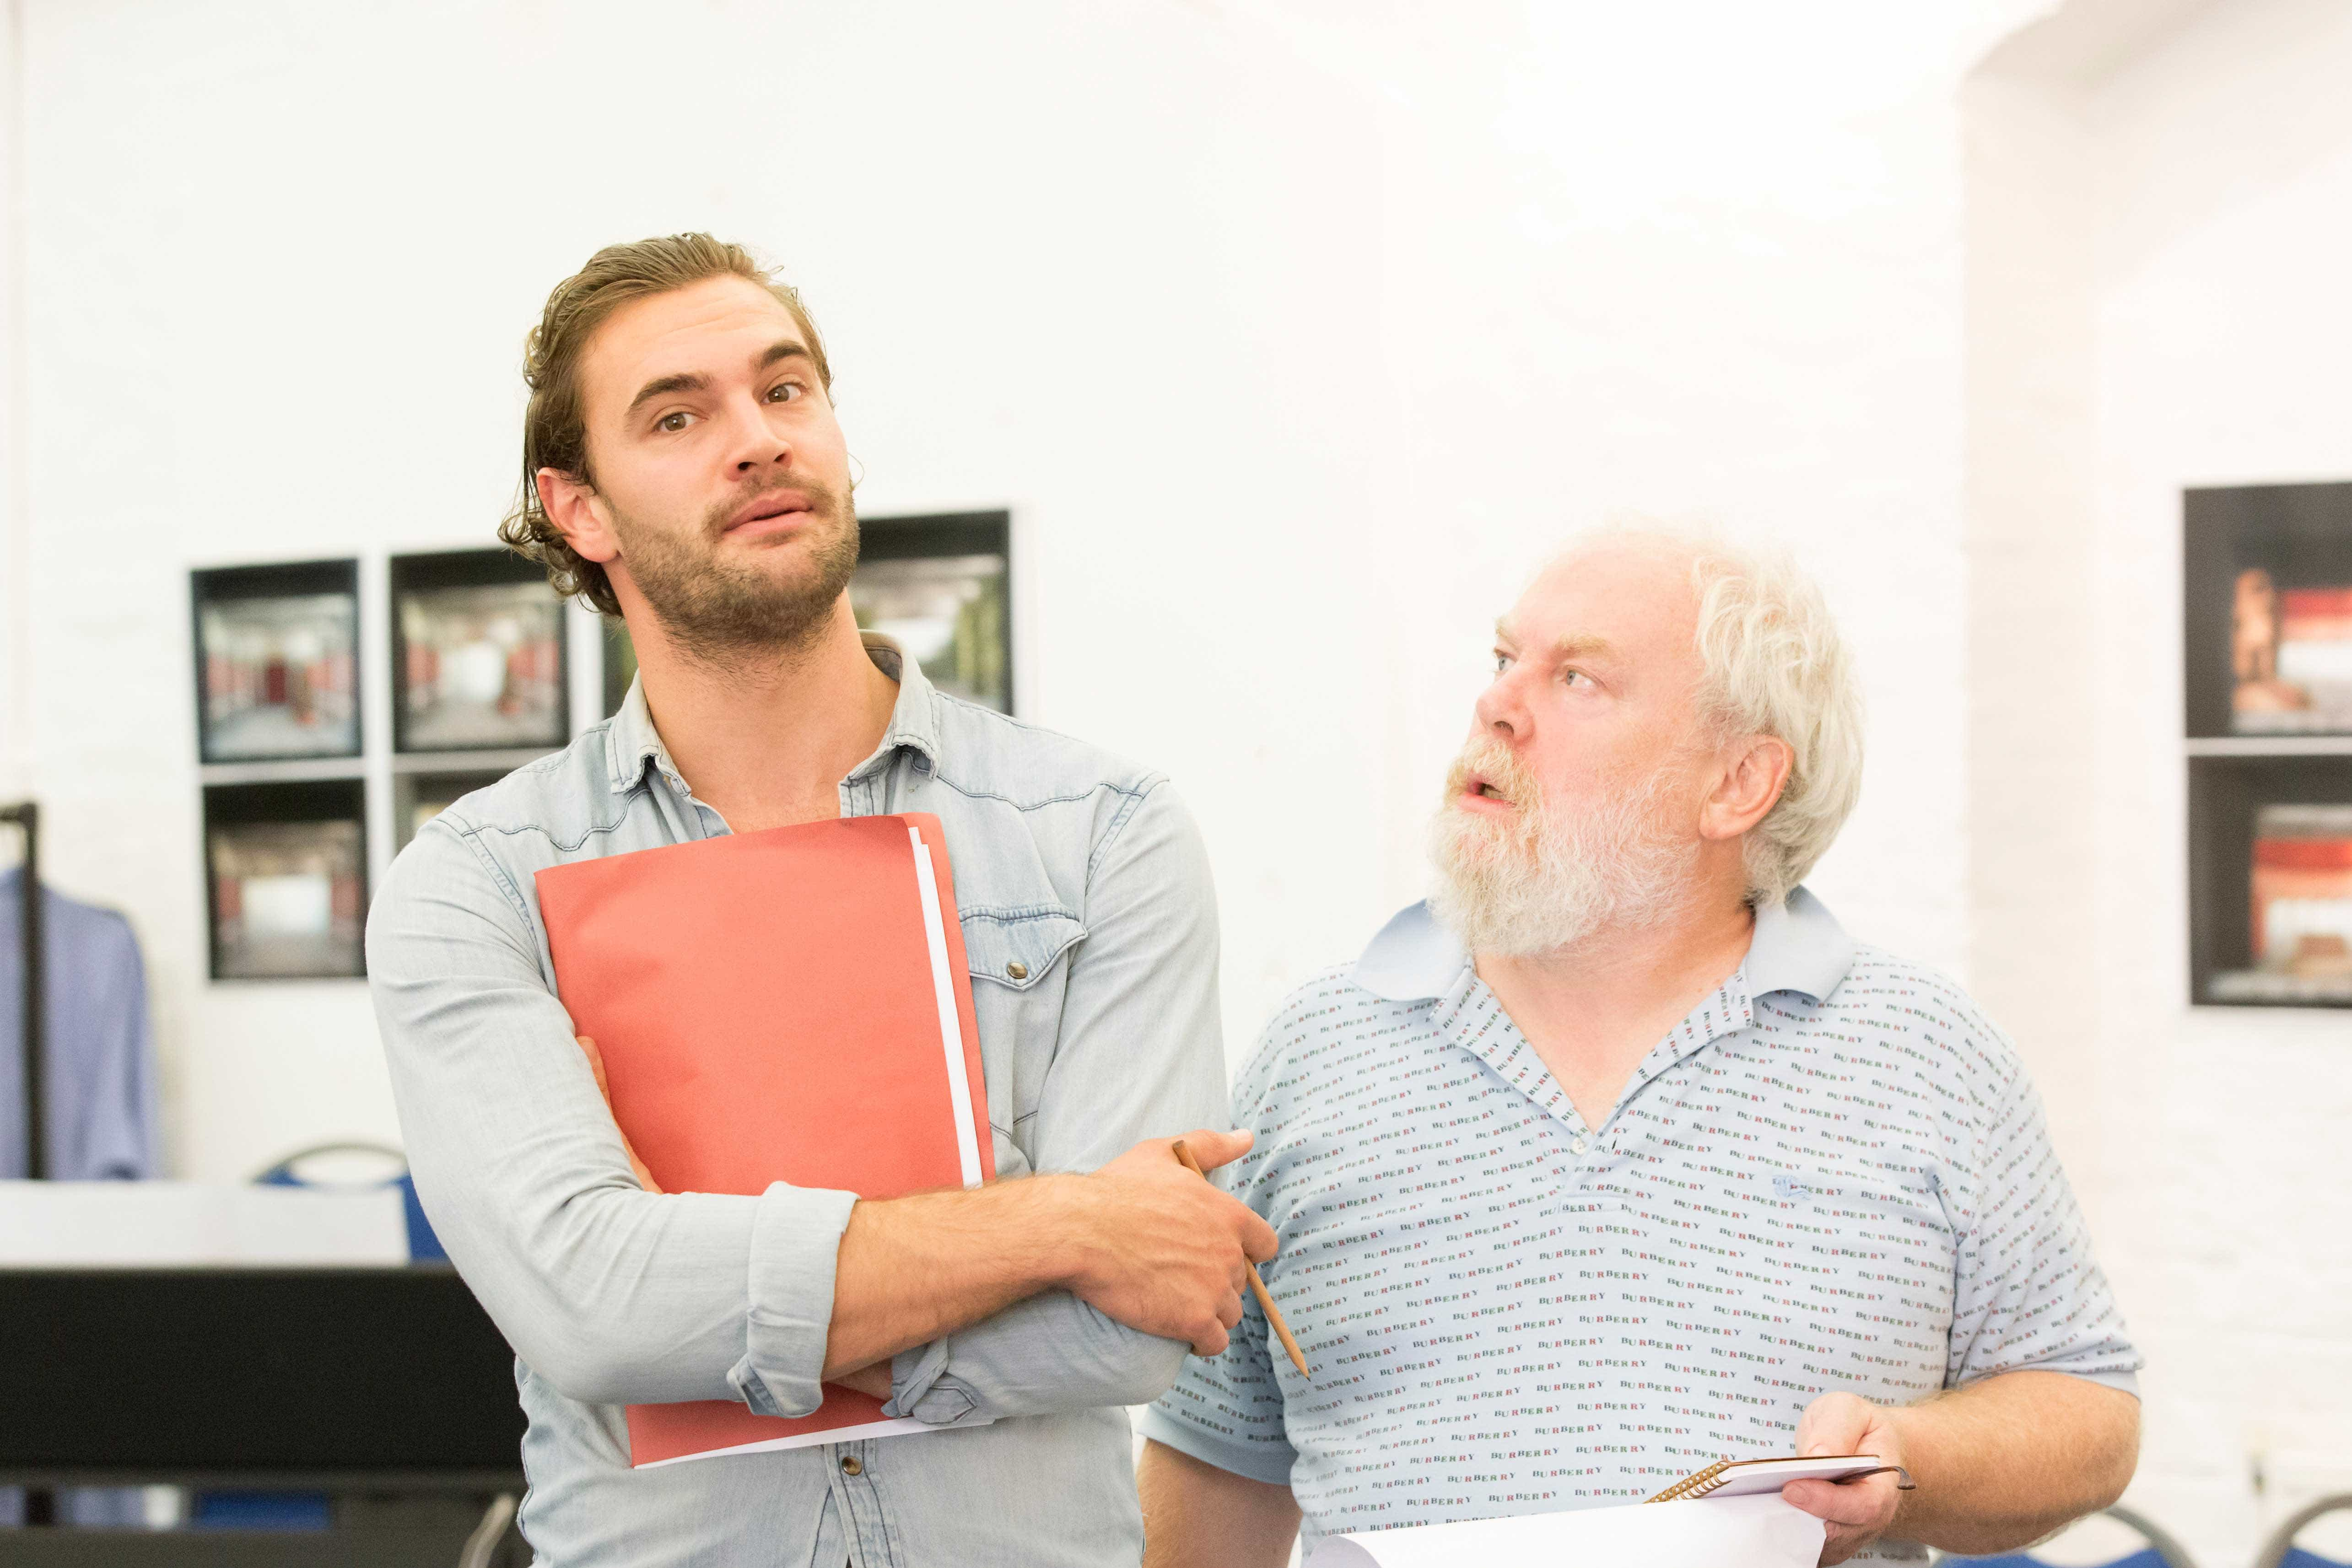 Tom Bateman and Jimmy Yuill in rehearsals for Harlequinade. Credit Johan Persson | Rehearsal images of Kenneth Branagh's Harlequinade